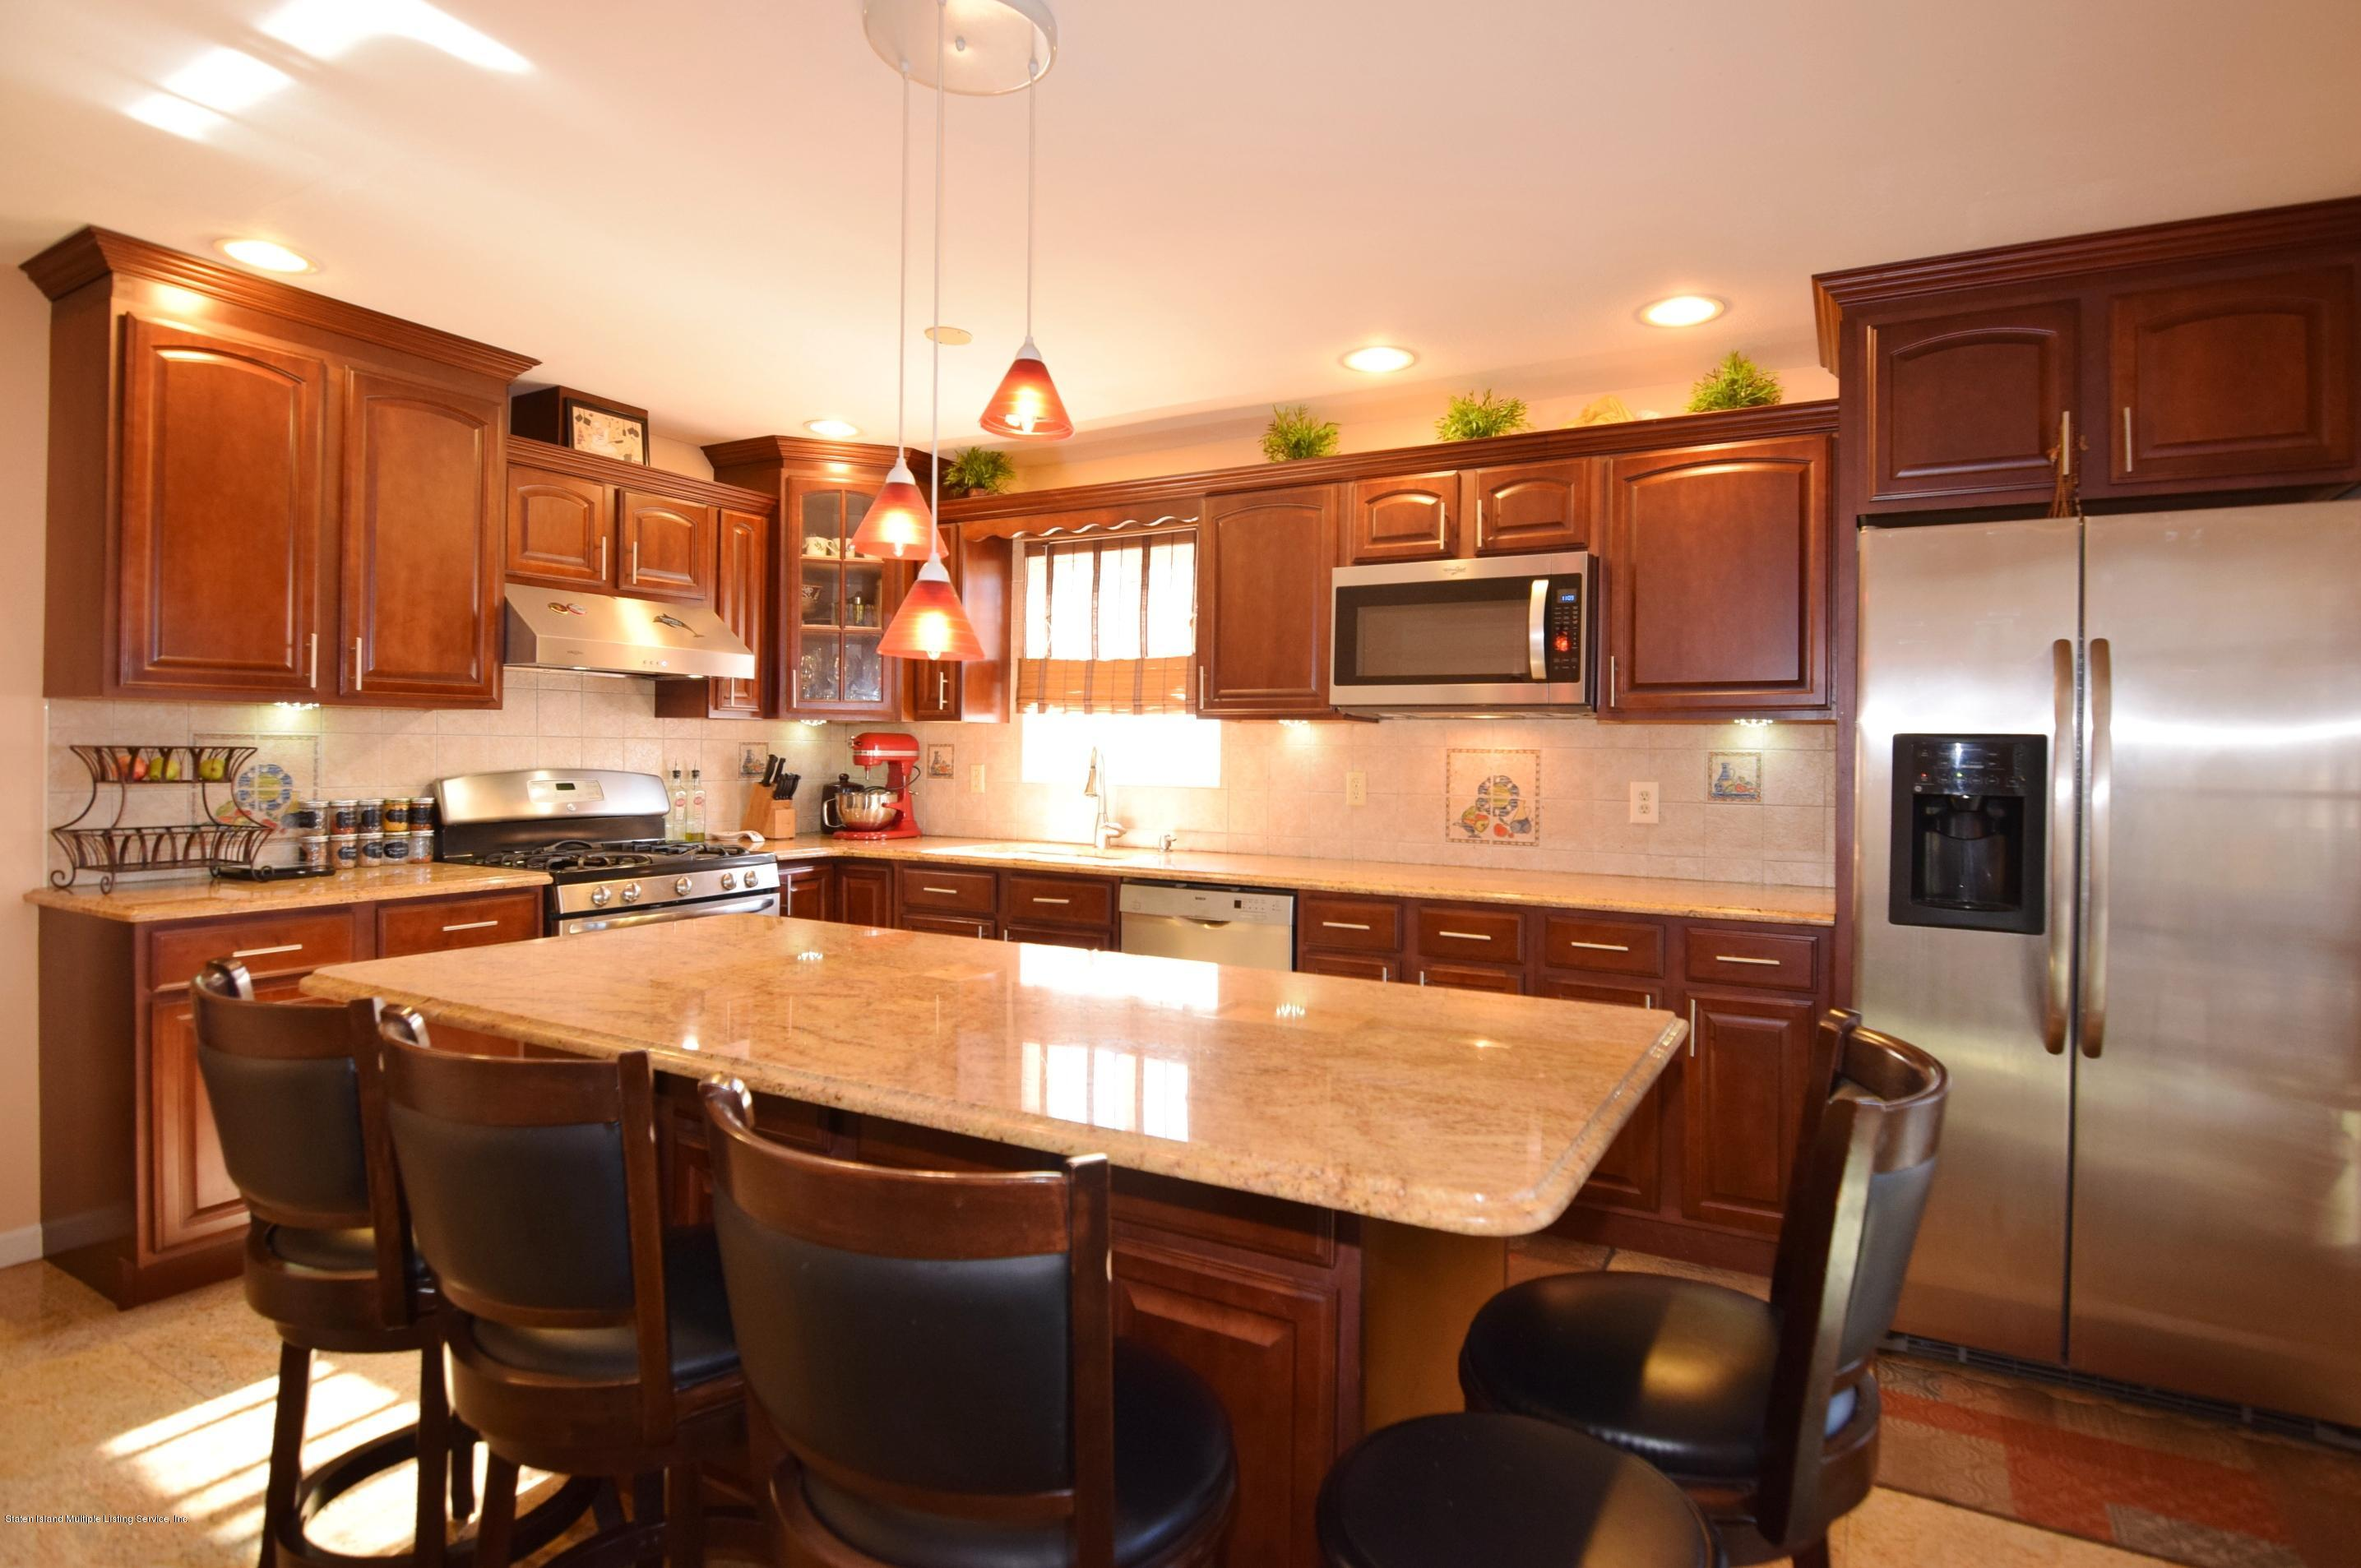 Single Family - Attached 140 Roosevelt Avenue  Staten Island, NY 10314, MLS-1124039-8